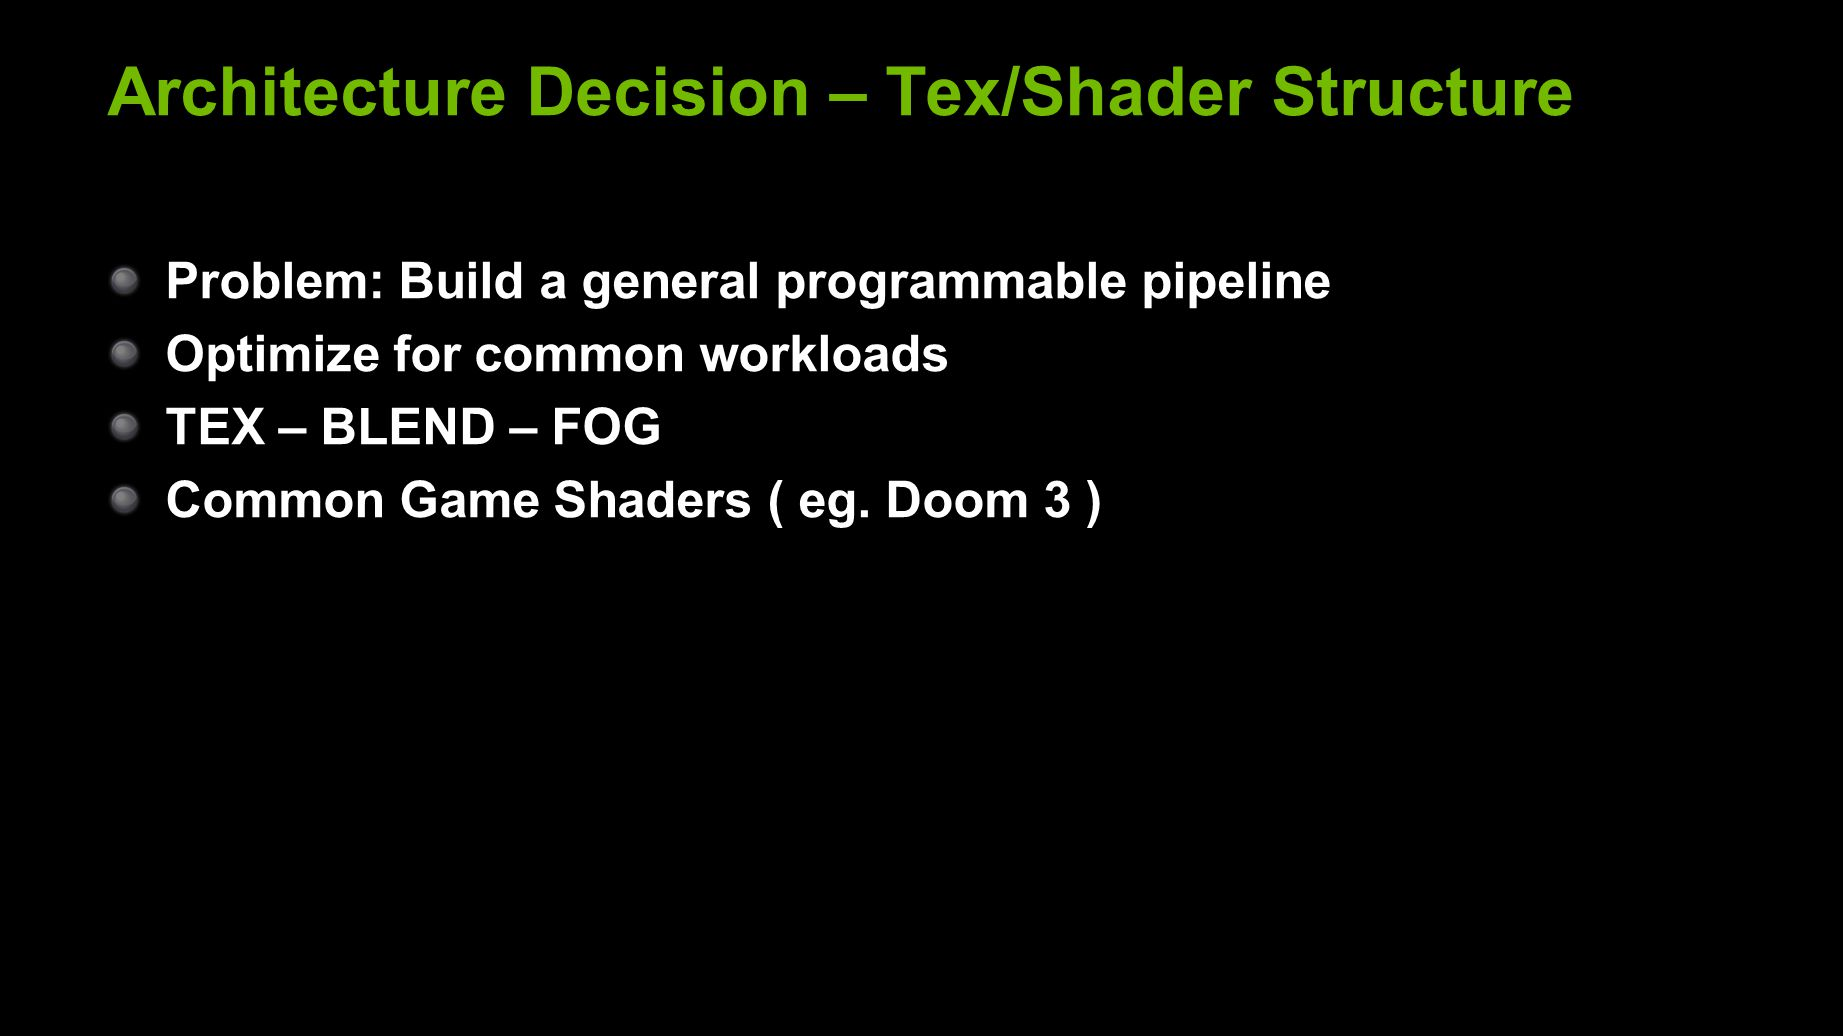 Architecture Decision – Tex/Shader Structure Problem: Build a general programmable pipeline Optimize for common workloads TEX – BLEND – FOG Common Game Shaders ( eg.